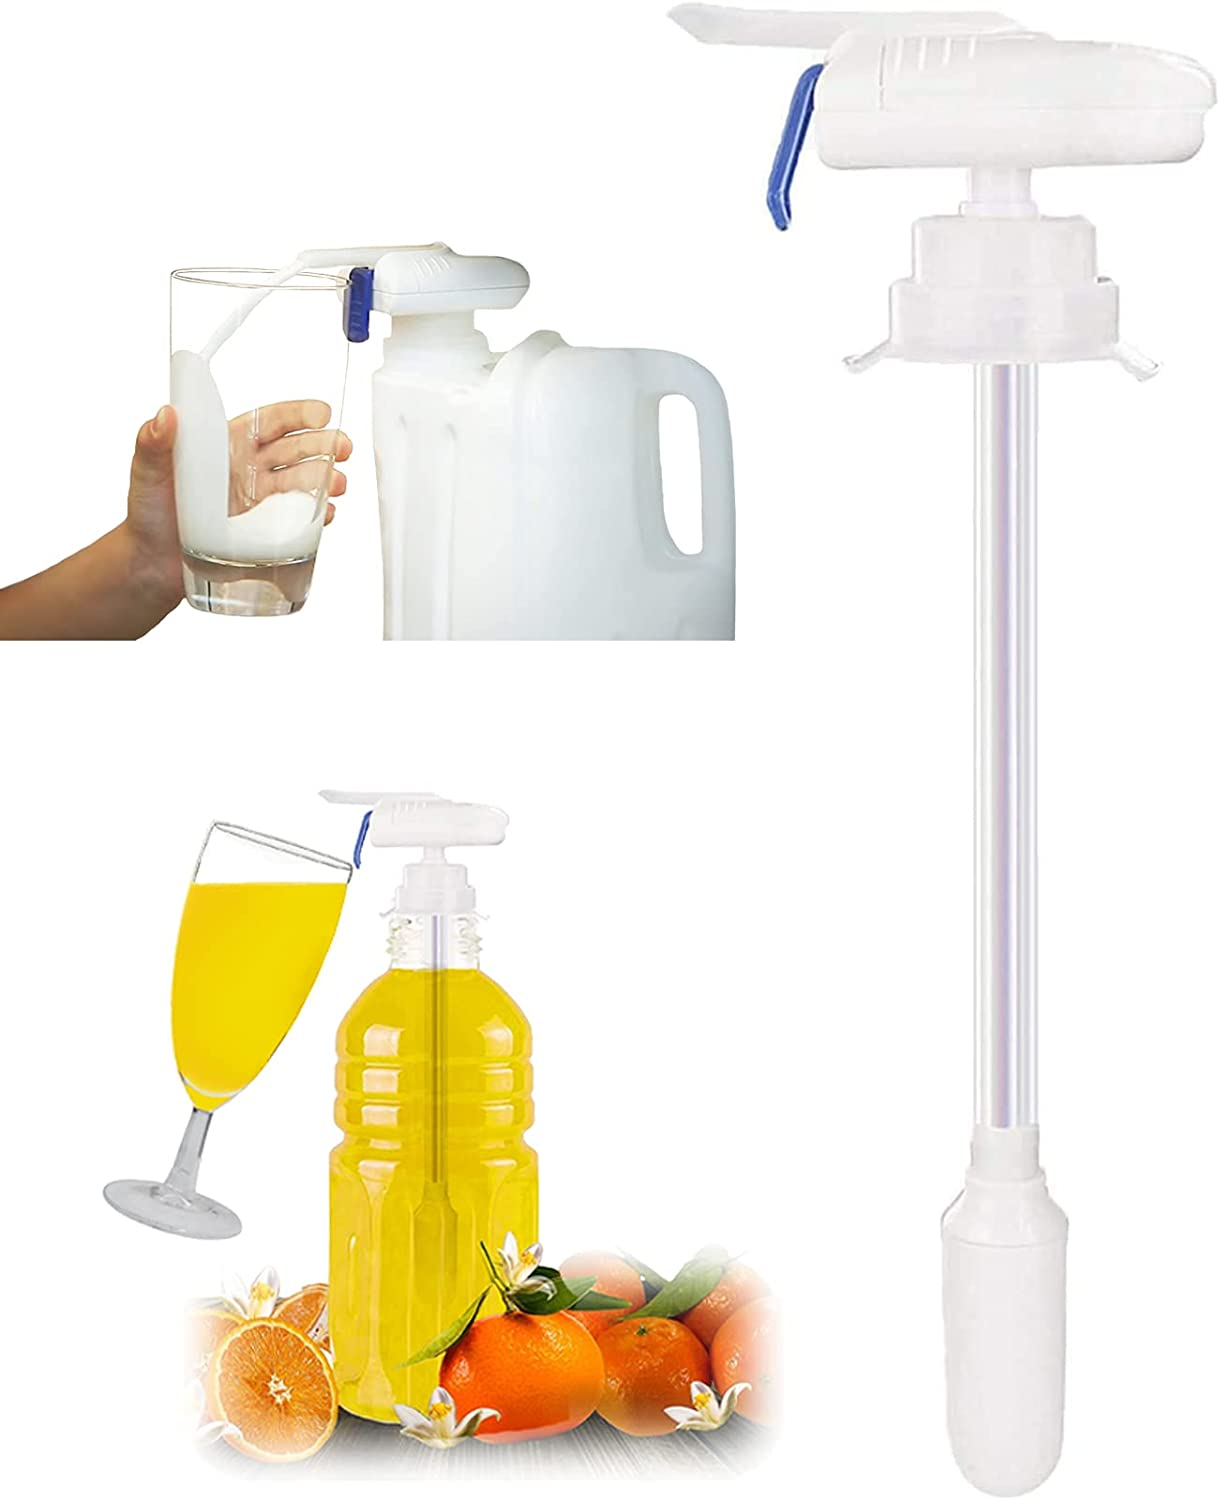 Automatic Drink Dispenser Water Dispenser Electric Tap Spill Proof Beverage Tap Drinks Suck Tools for Party Fruit Juice Beer Outdoor Kitchen 1 Pack